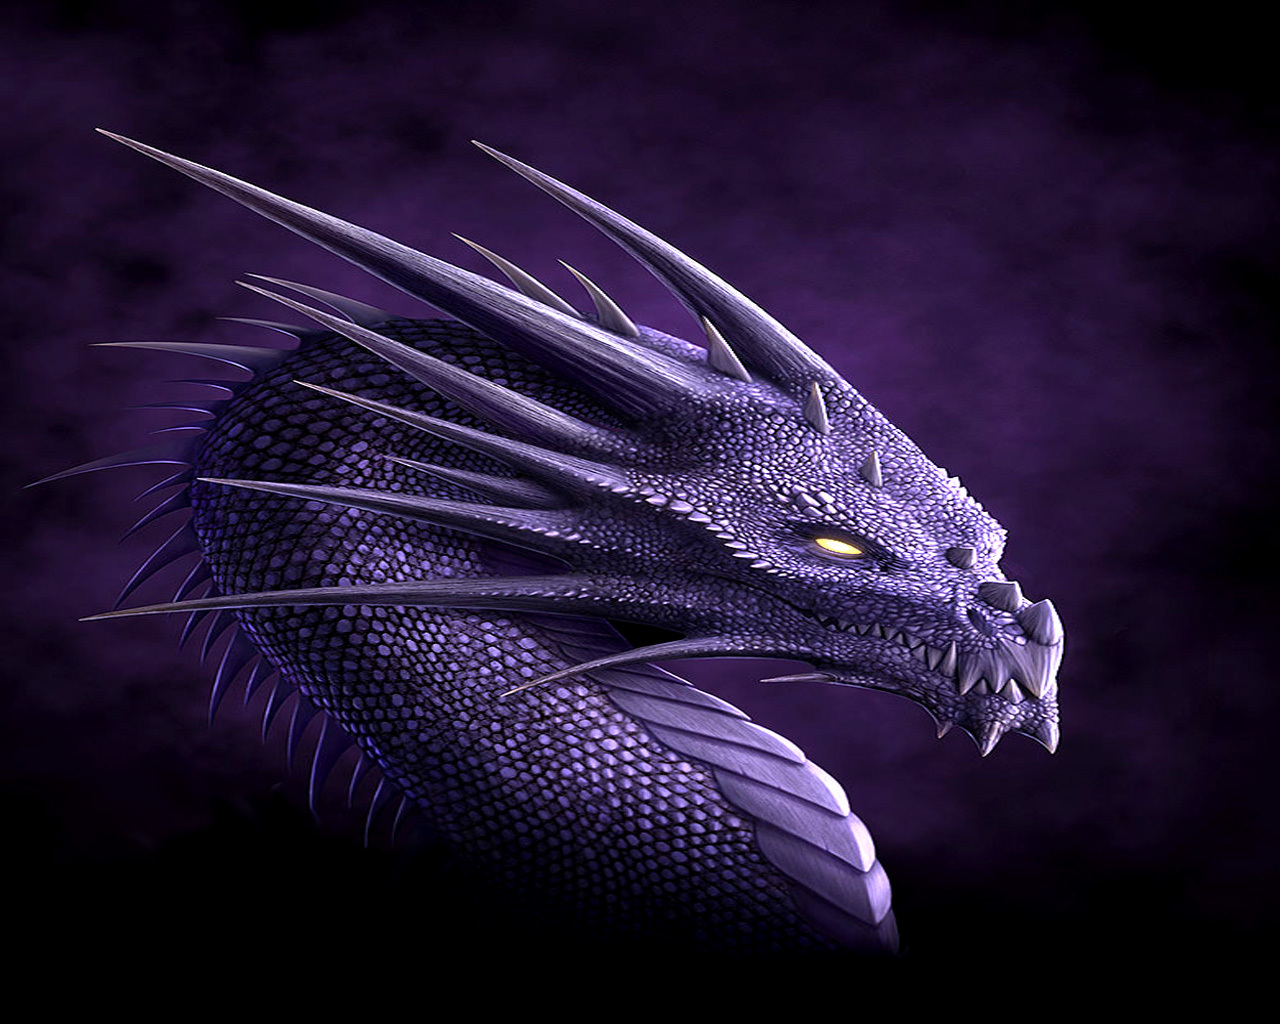 dragons images dragon wallpaper hd wallpaper and